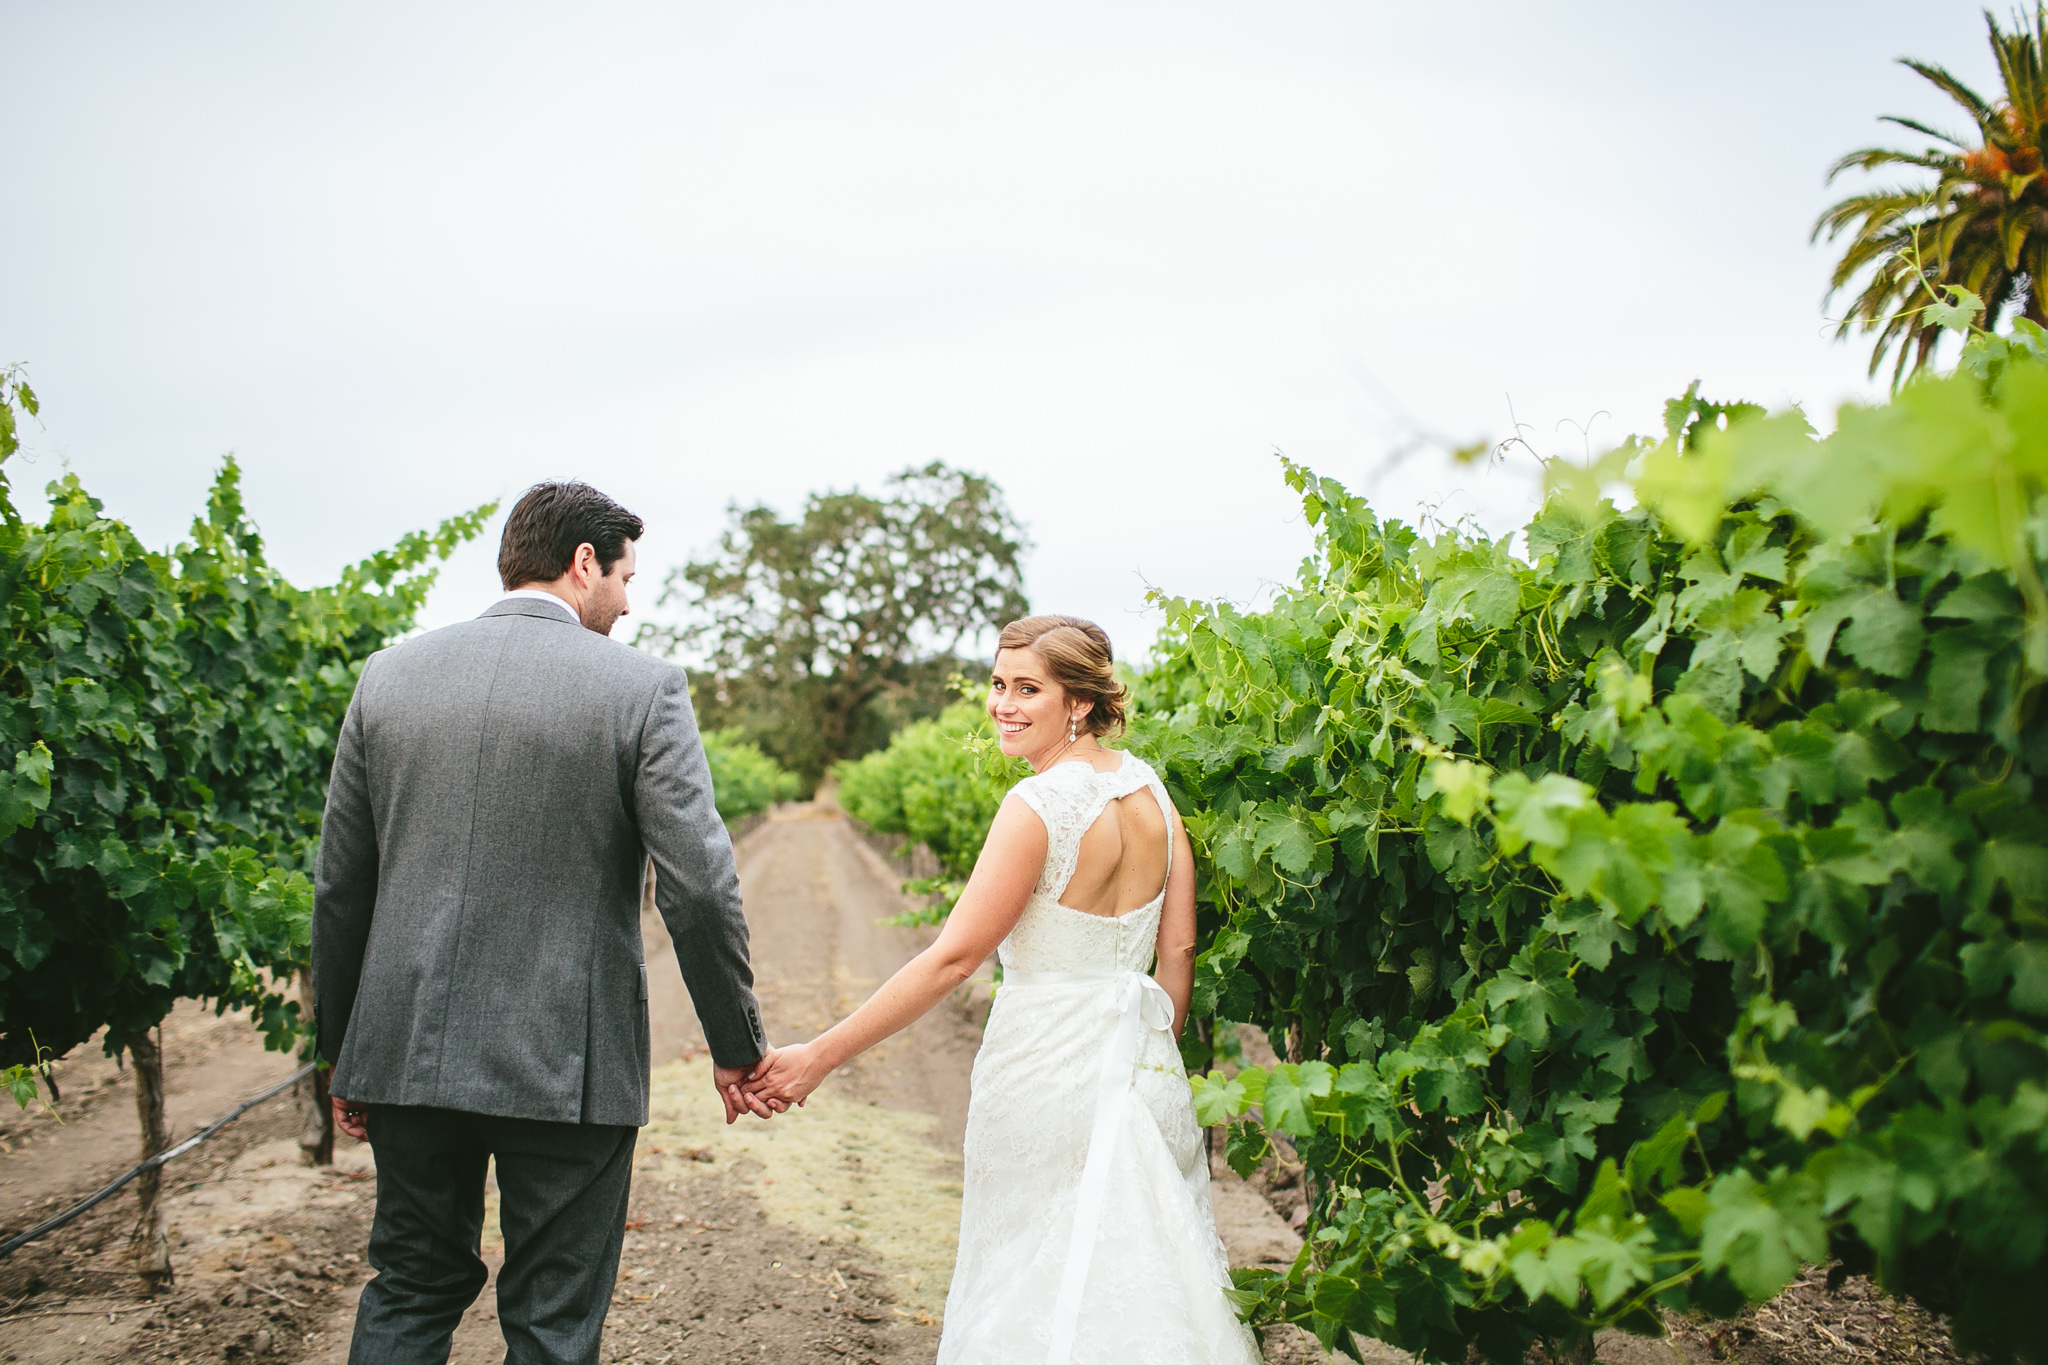 whitney+parker-WEB_BLOG-126